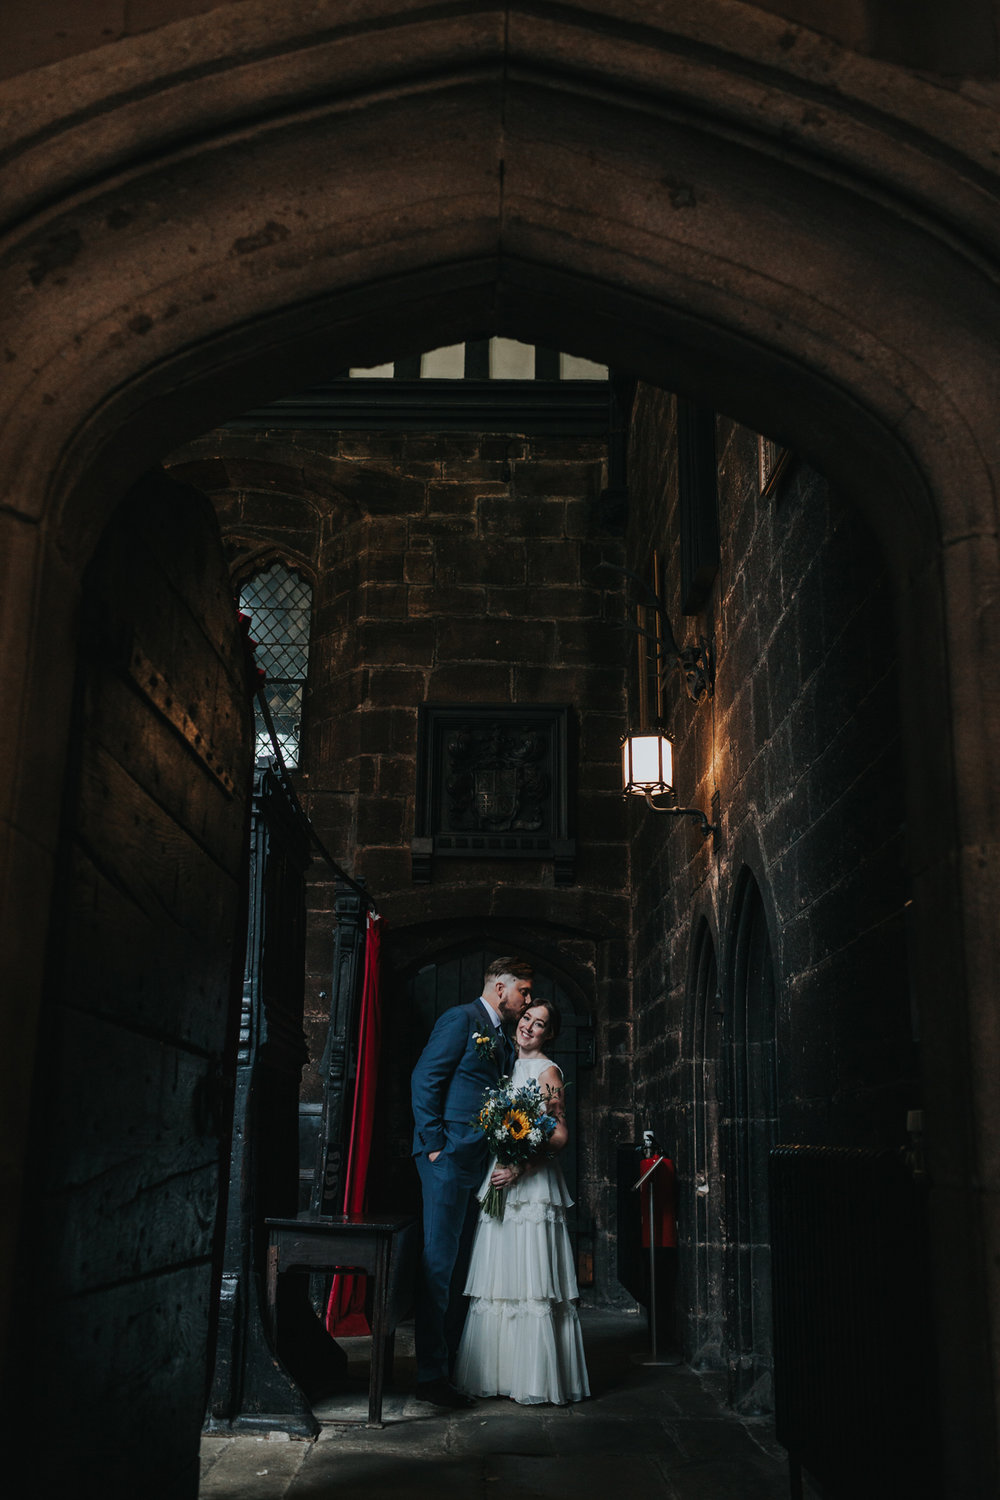 Bride and Groom have a moment in the doorway at Chetham Library Manchester.